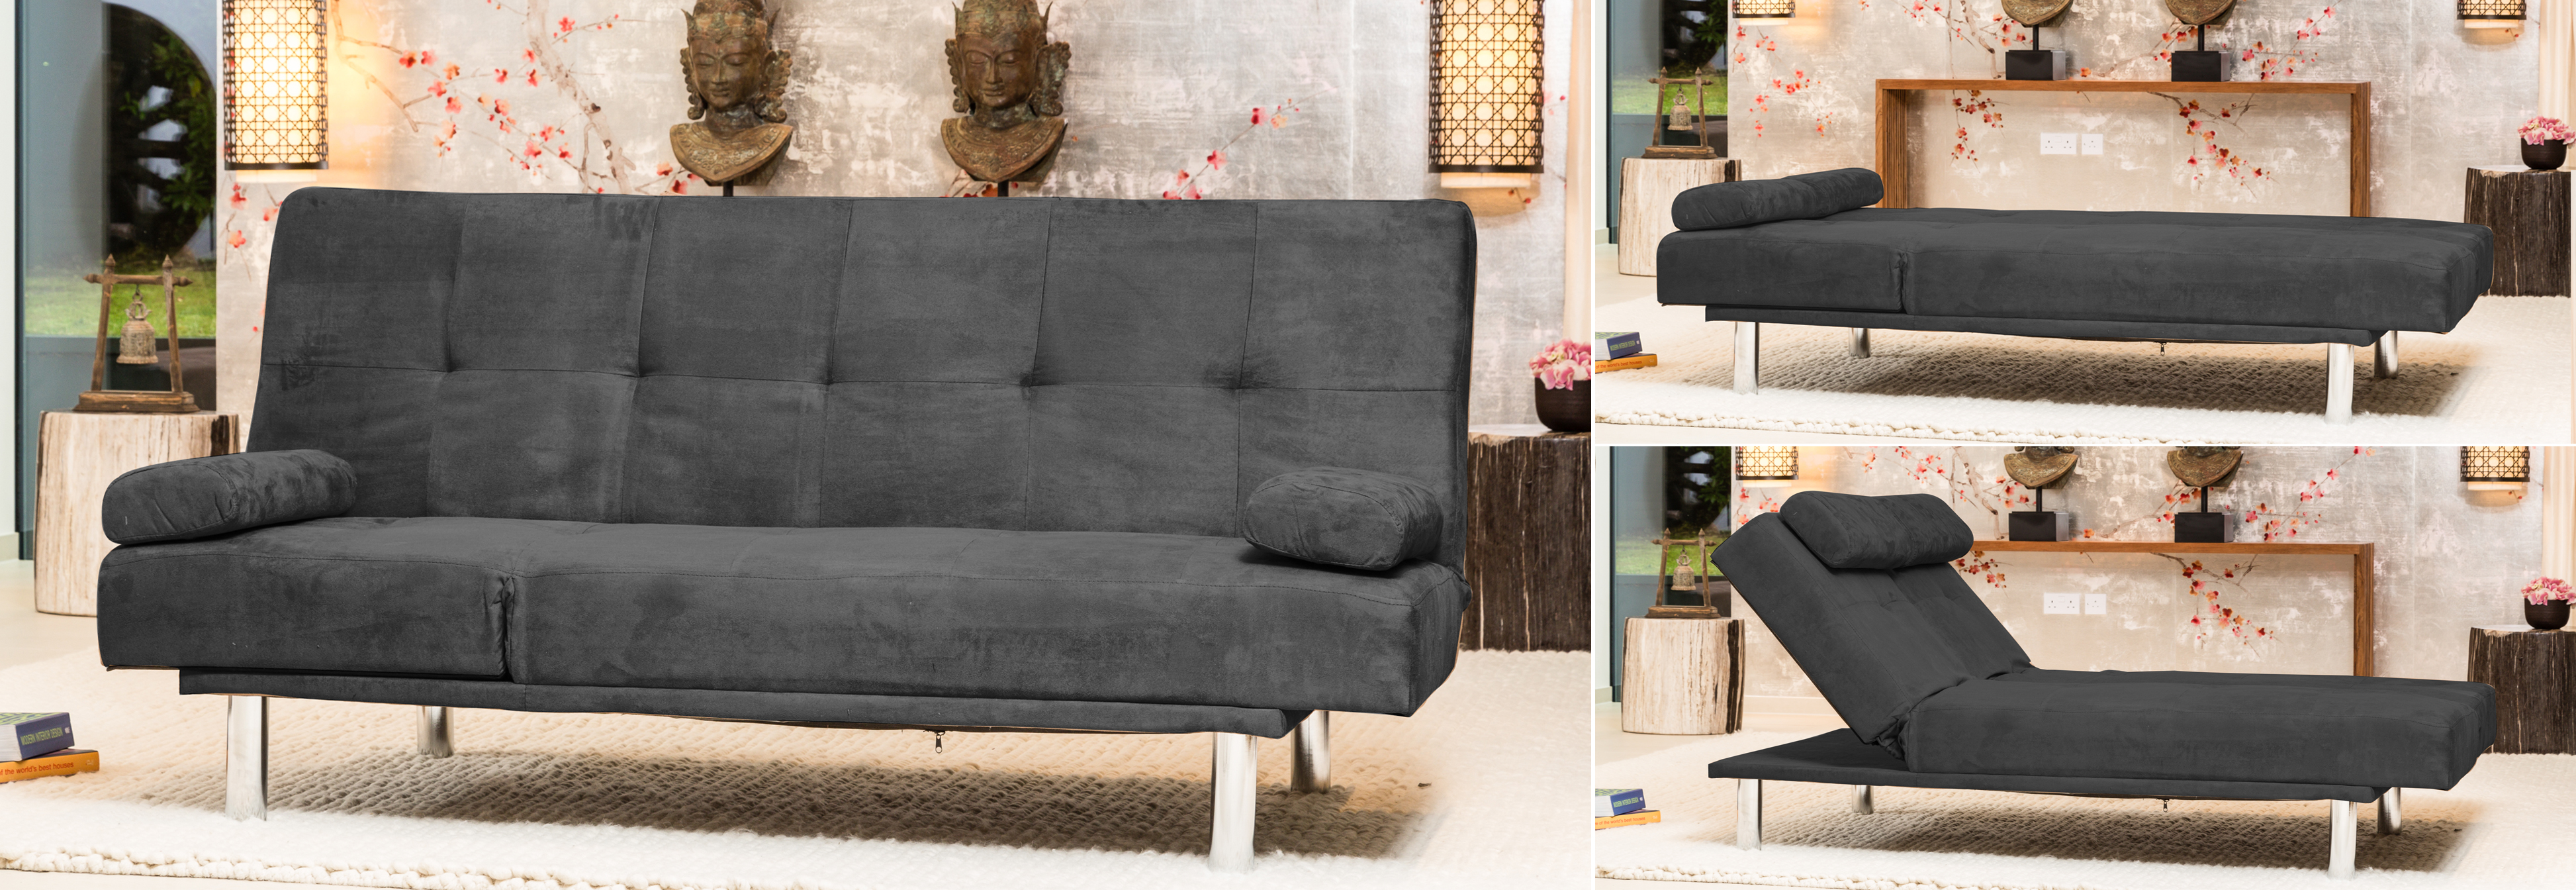 Leyburn Reclining Sofabed charcoal